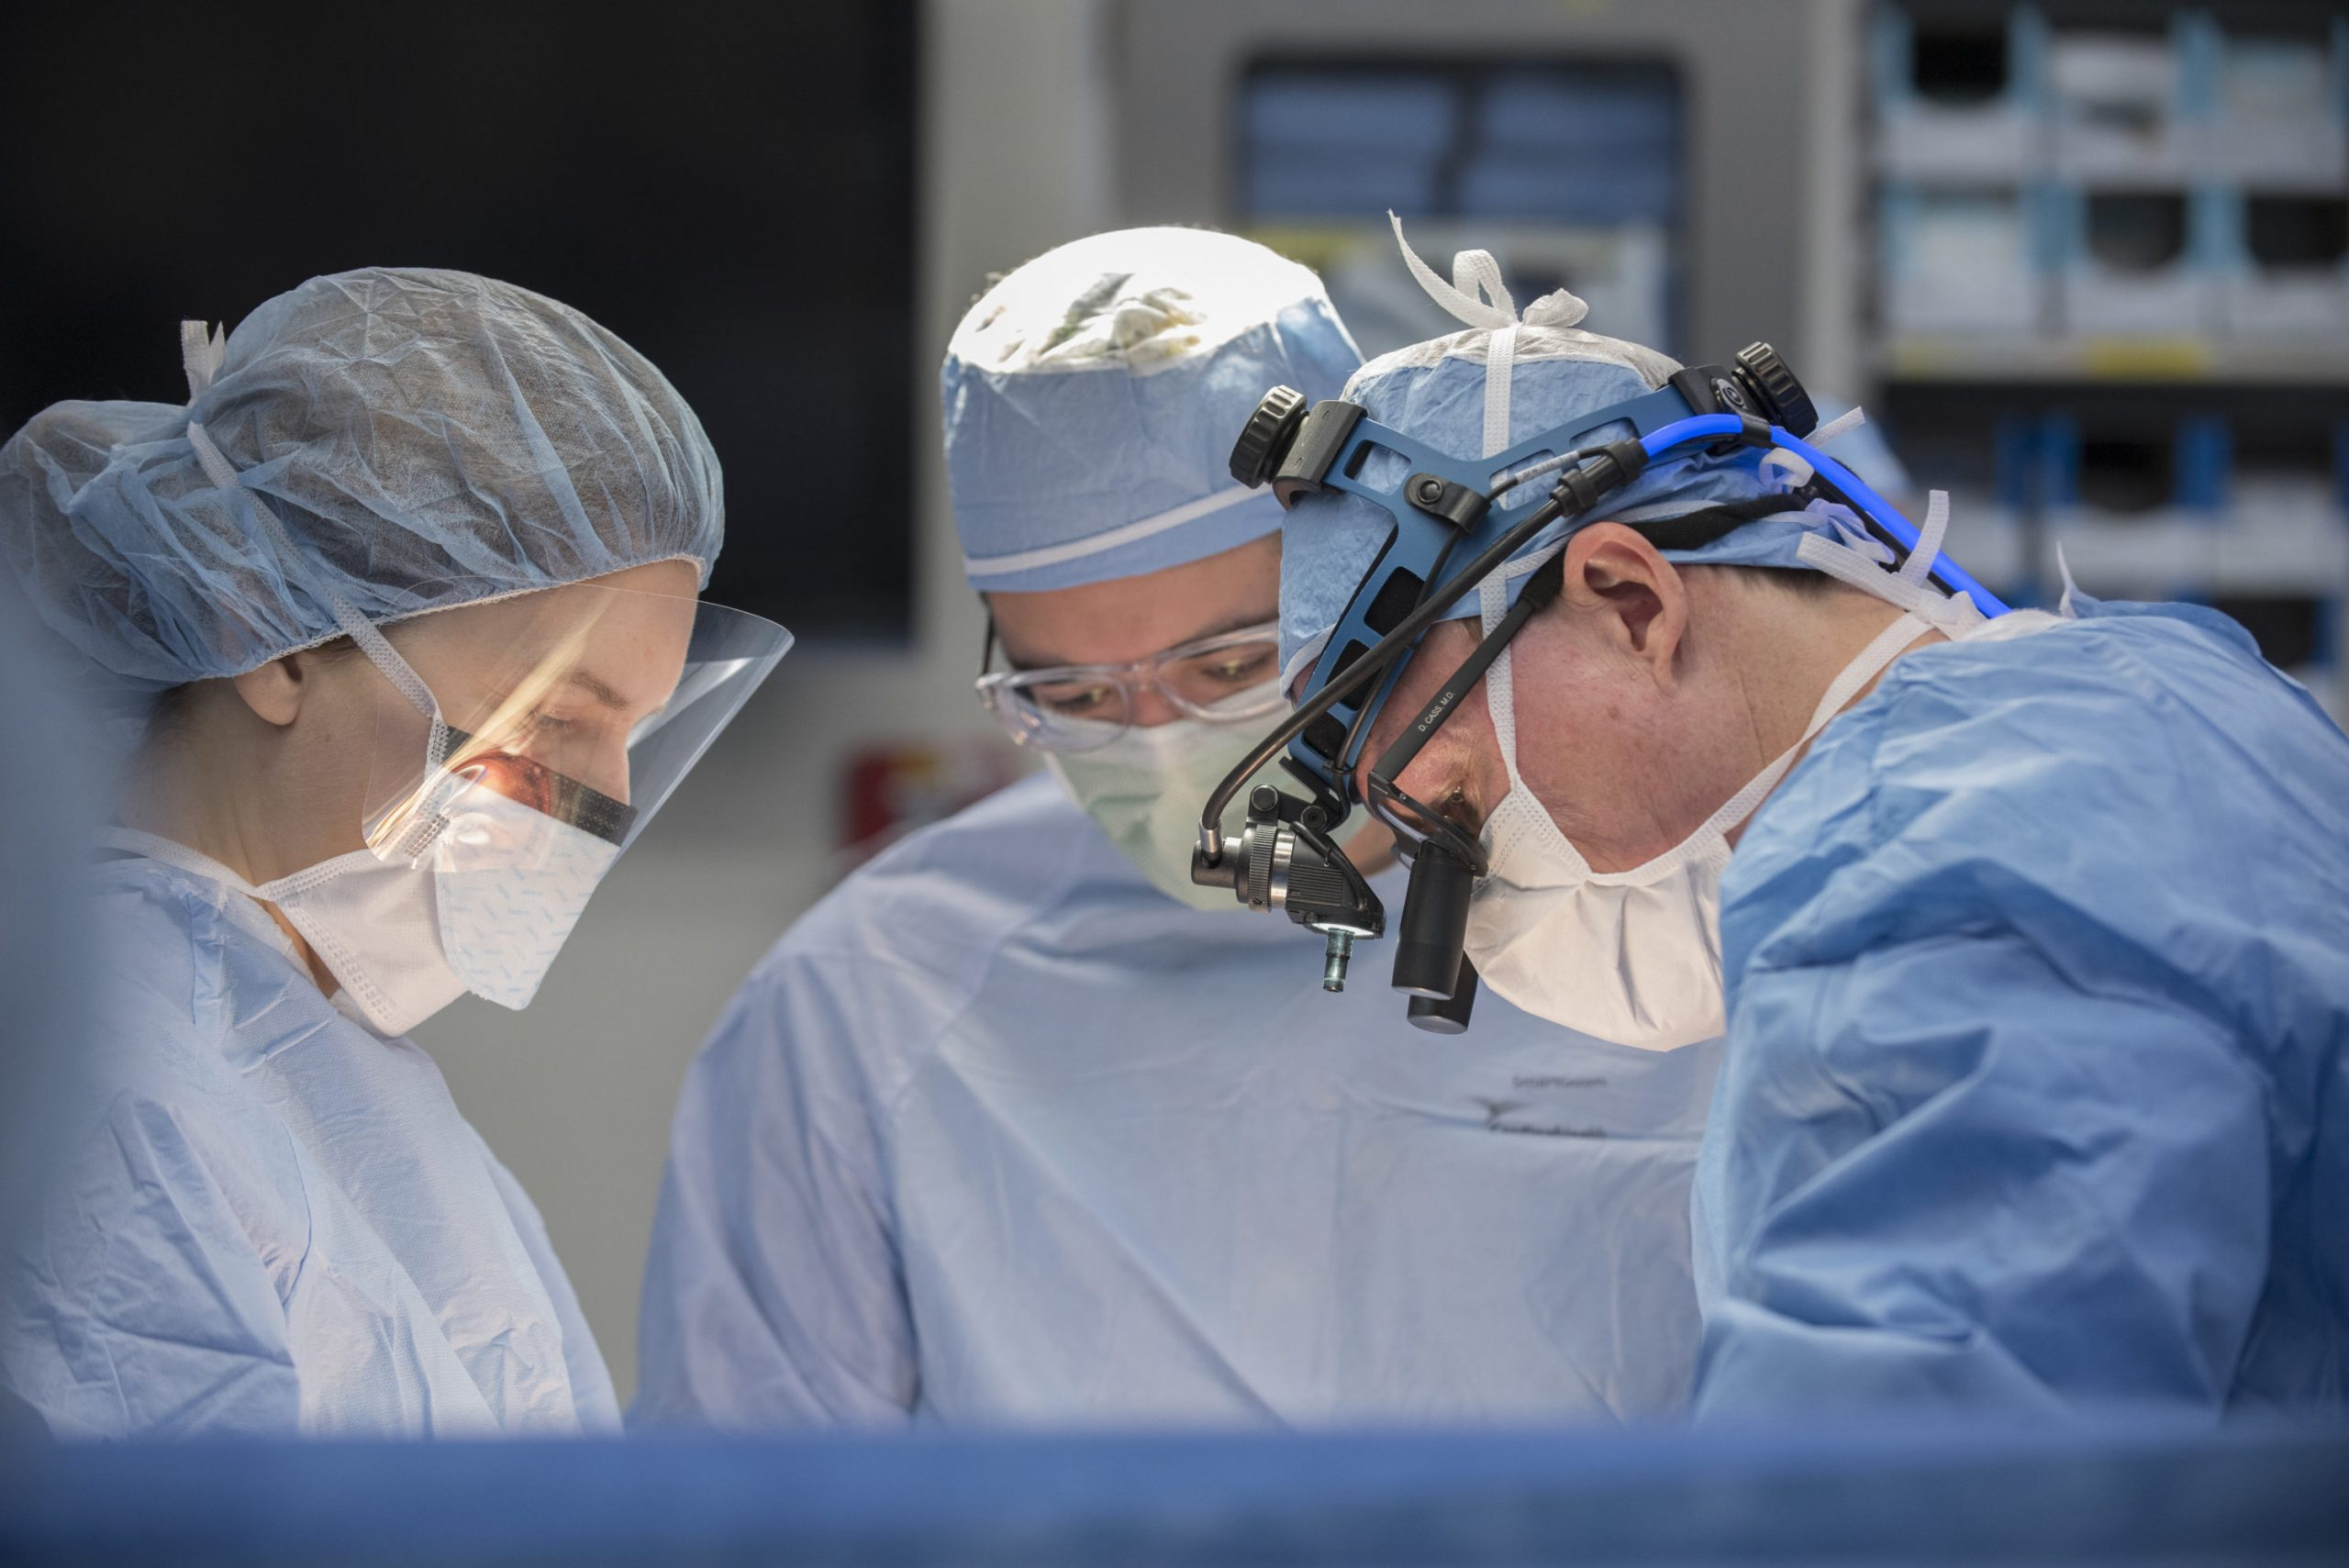 Cleveland Clinic Conducted Its First Successful Fetal Surgery